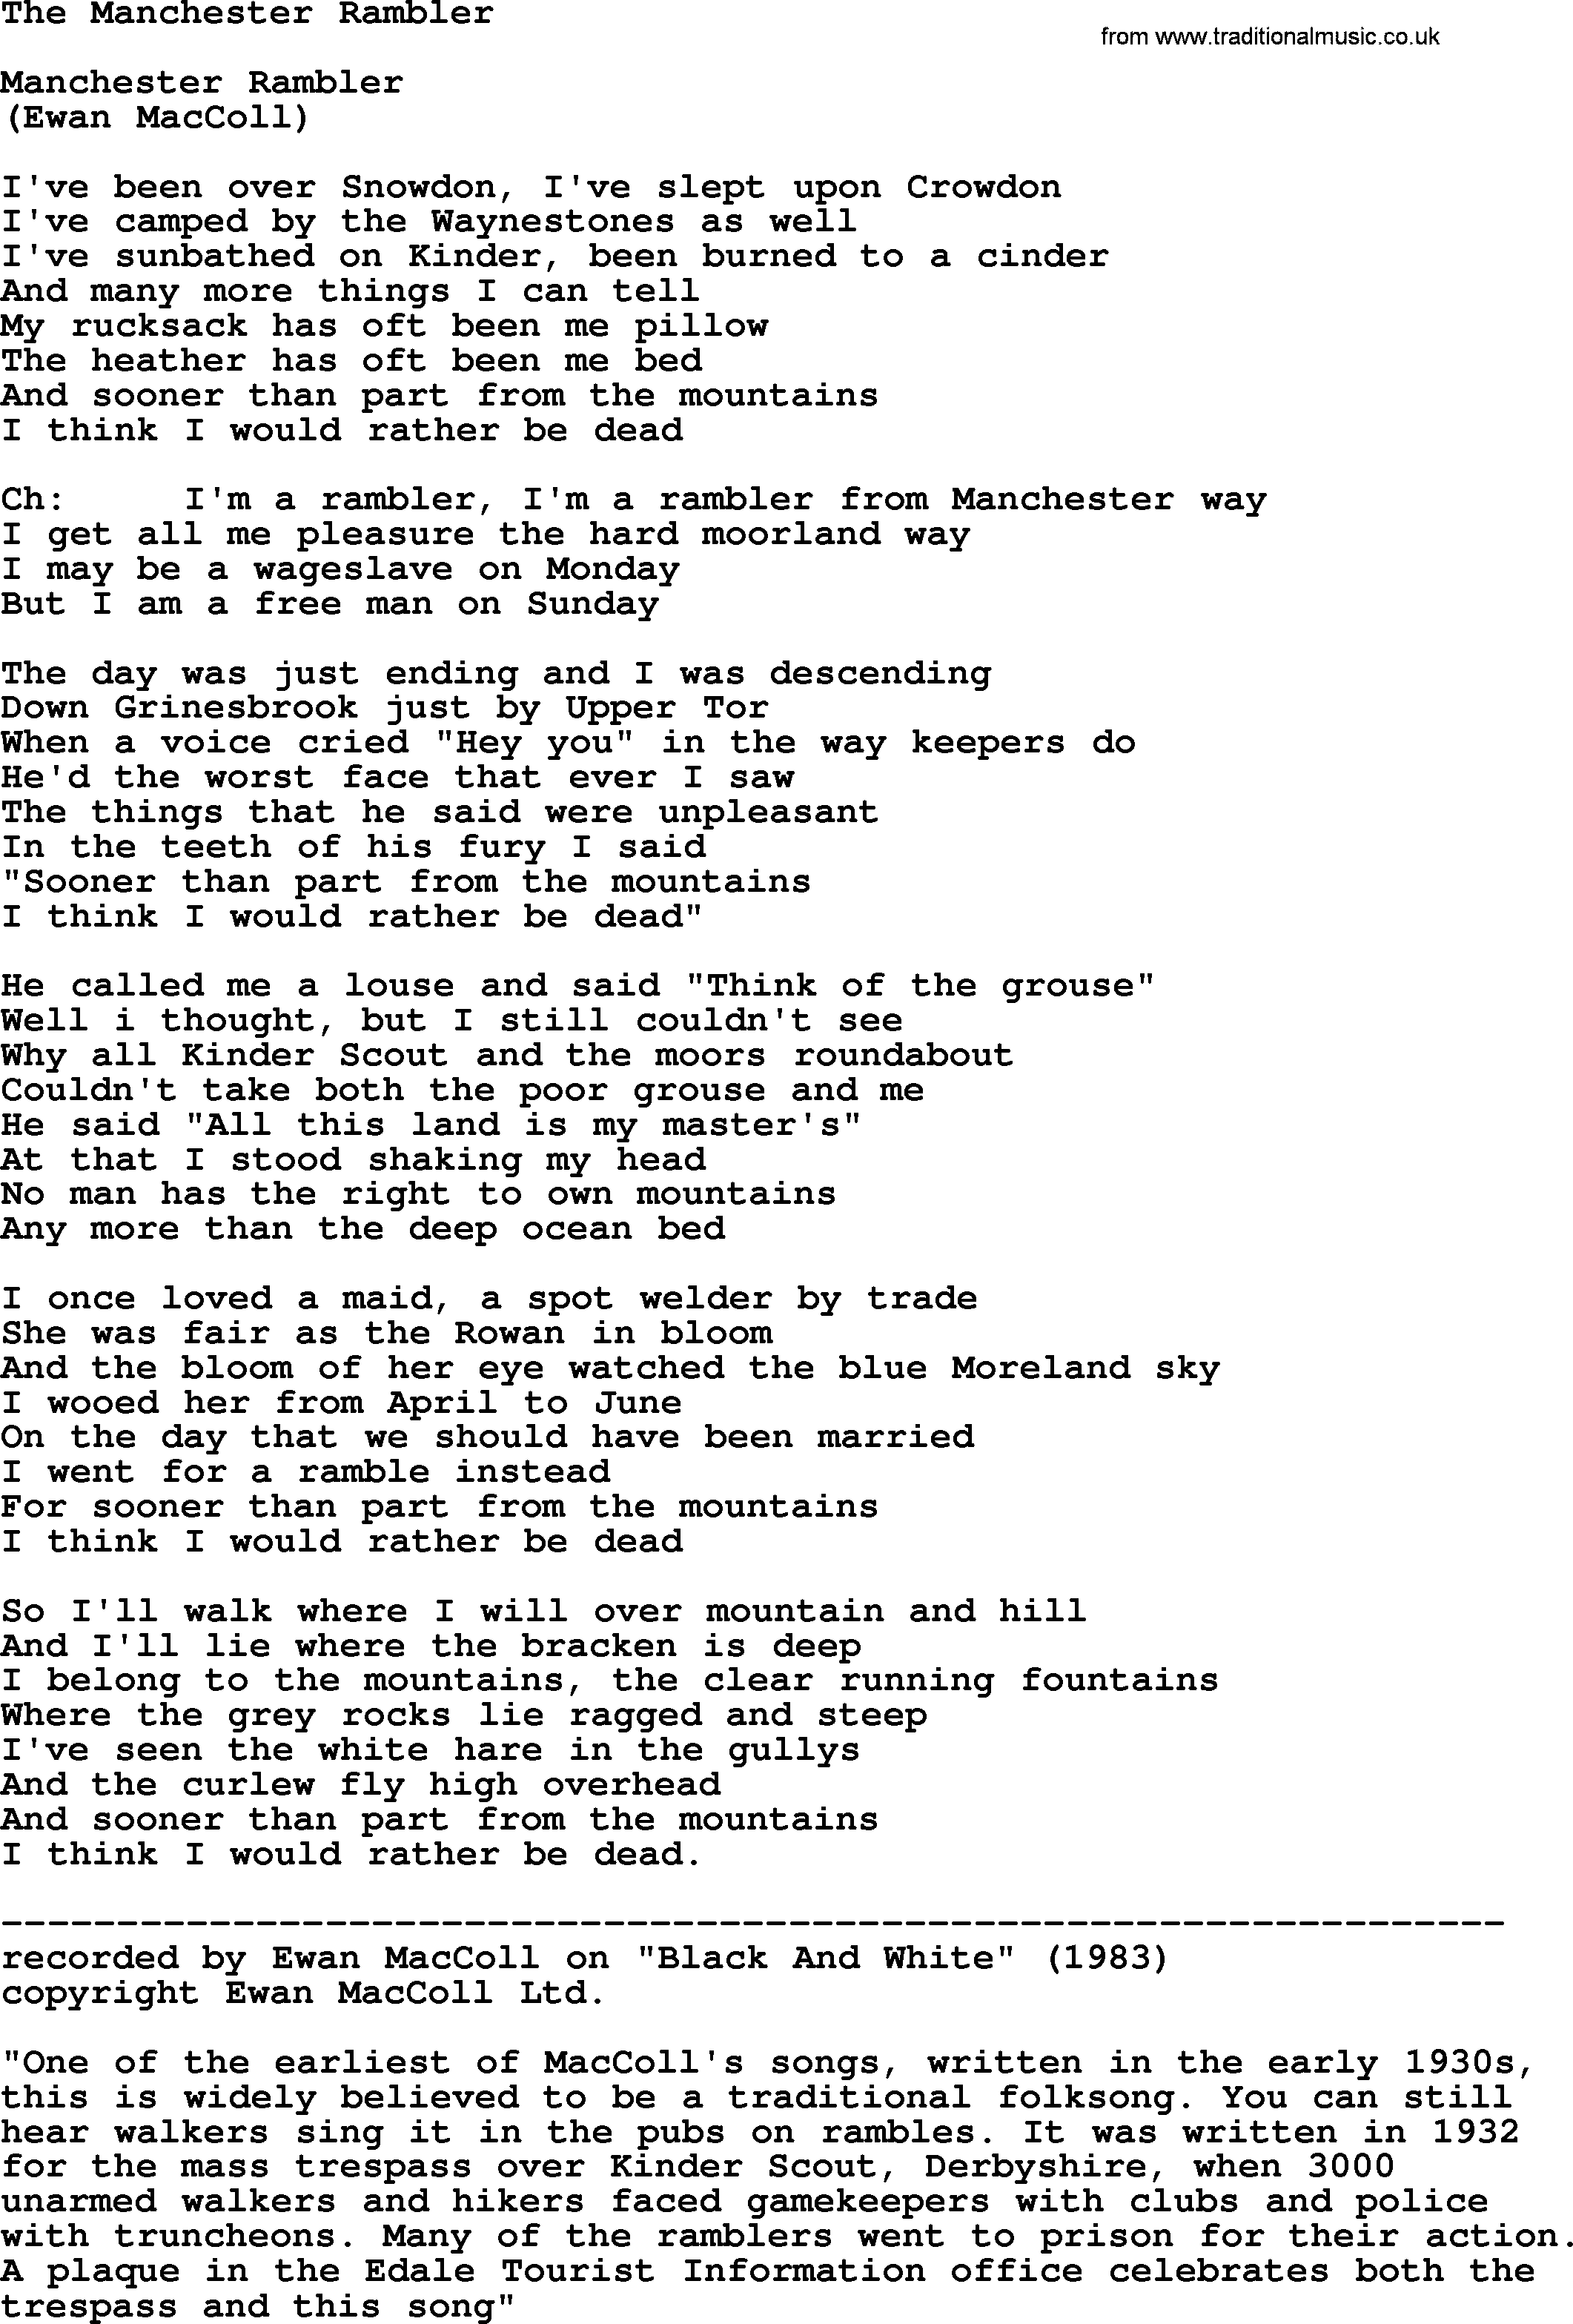 The Manchester Rambler by The Dubliners - song lyrics and chords